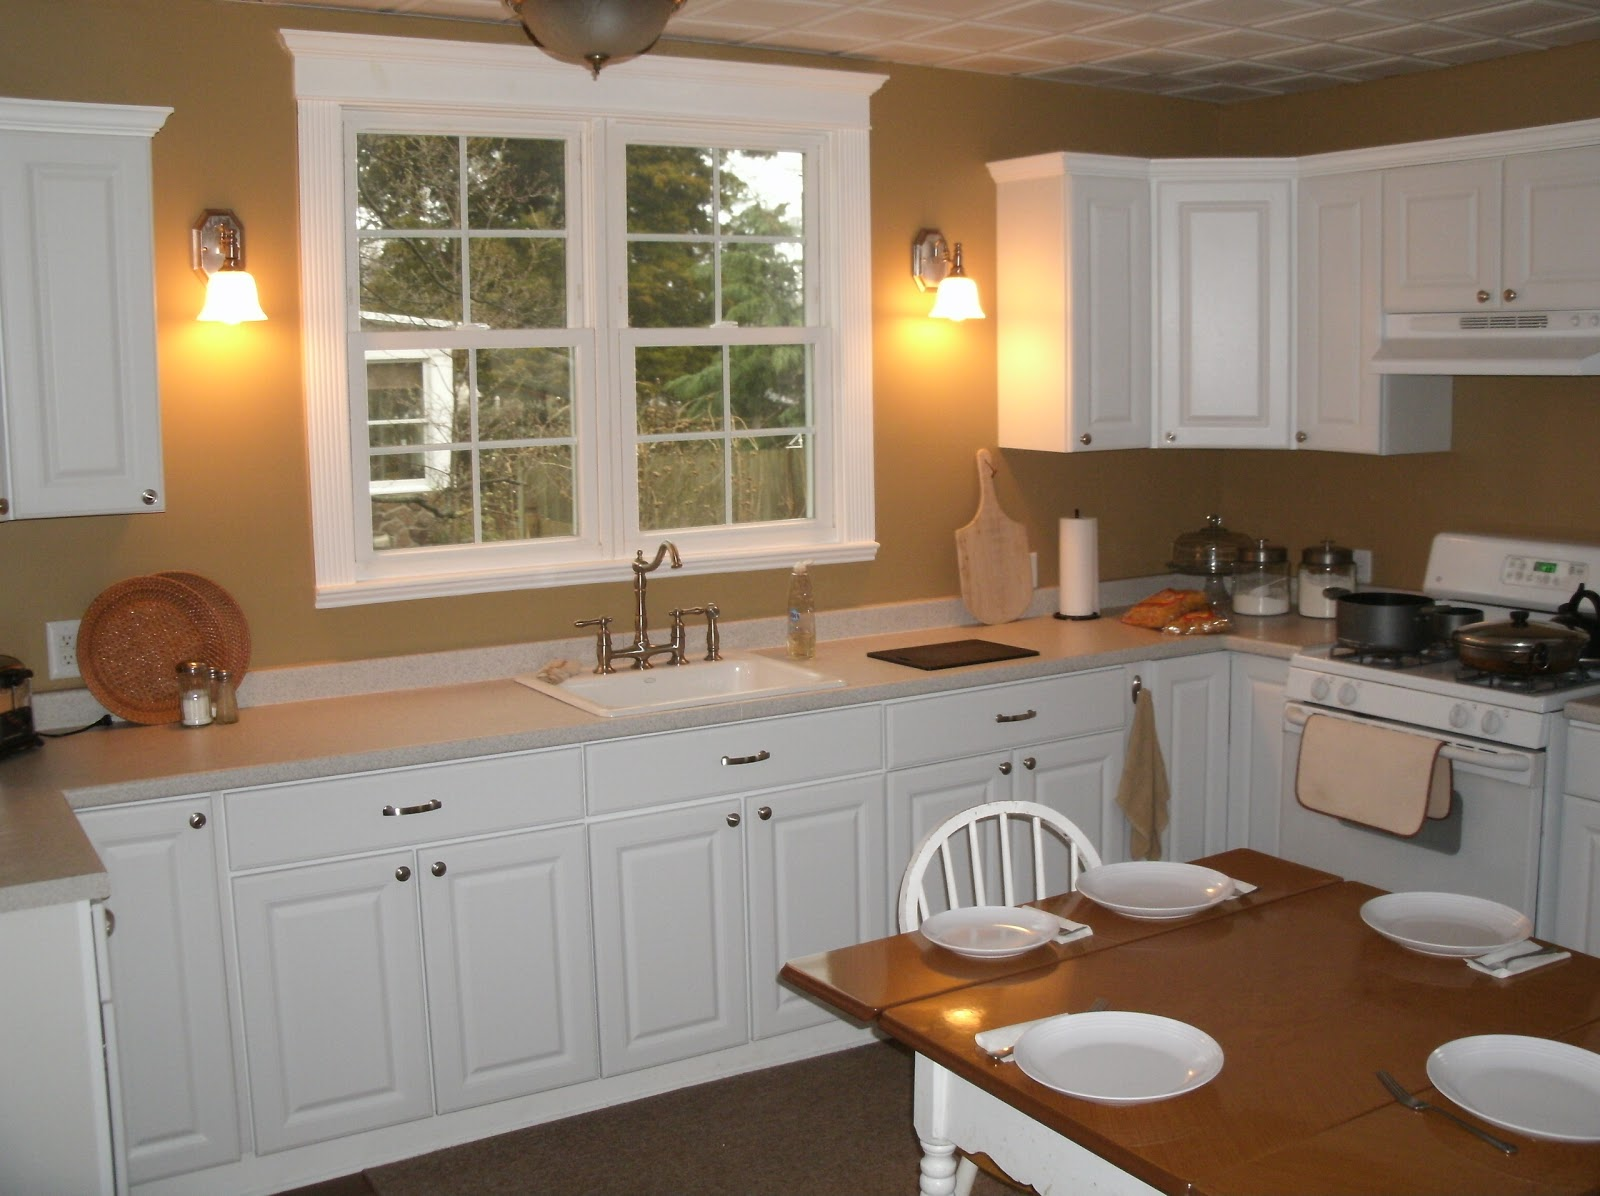 Home Remodeling and improvements Tips and How tos: Victorian Kitchen remodeling and Custom